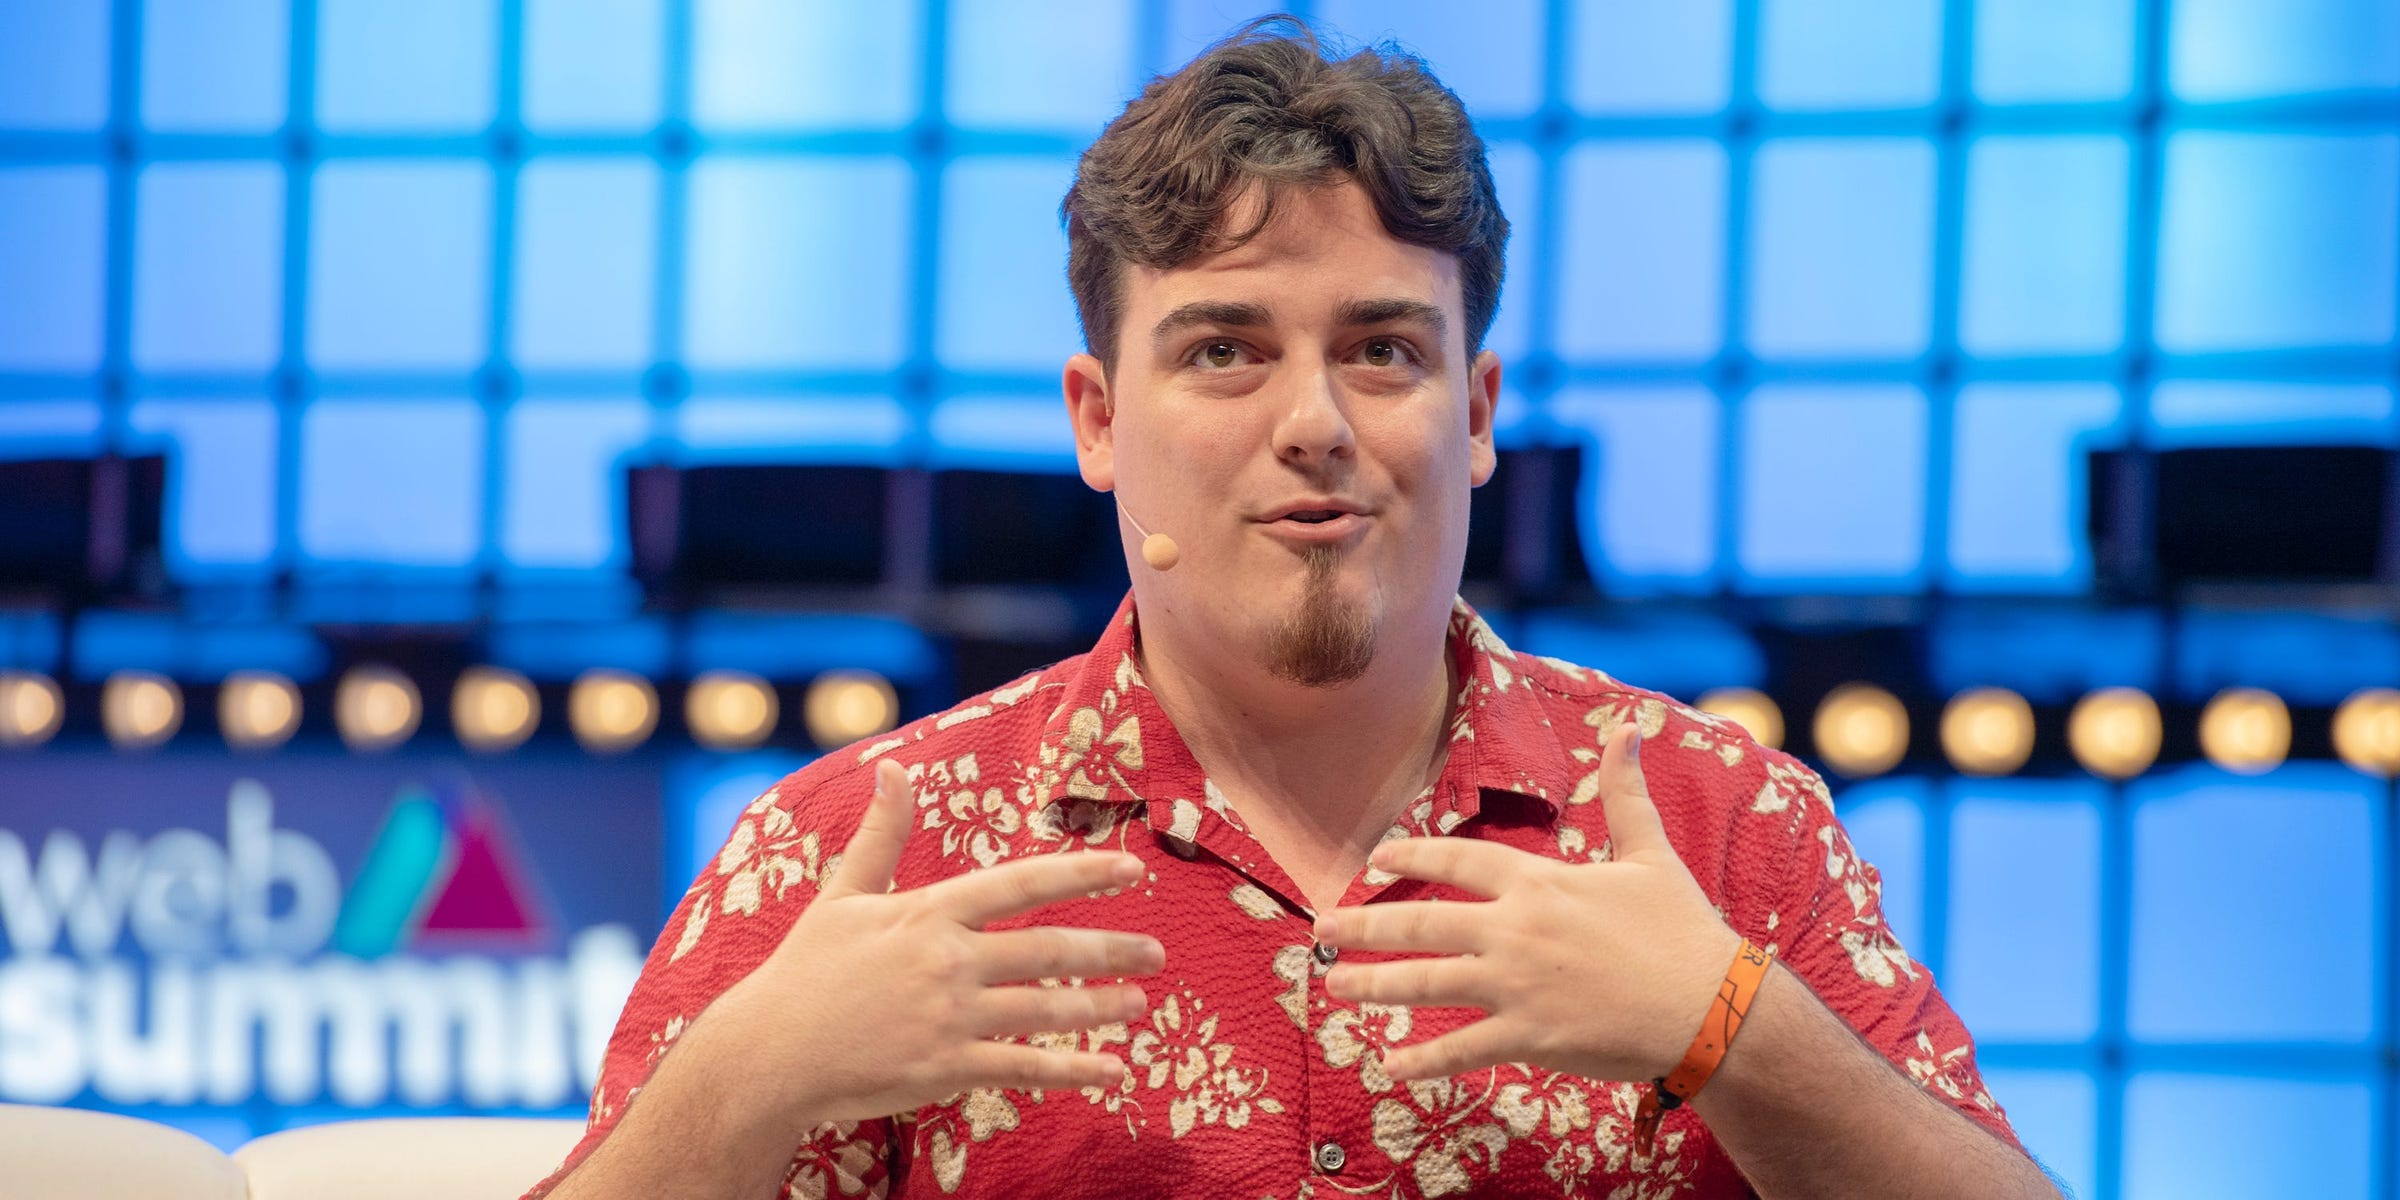 Palmer Luckey Anduril CEO